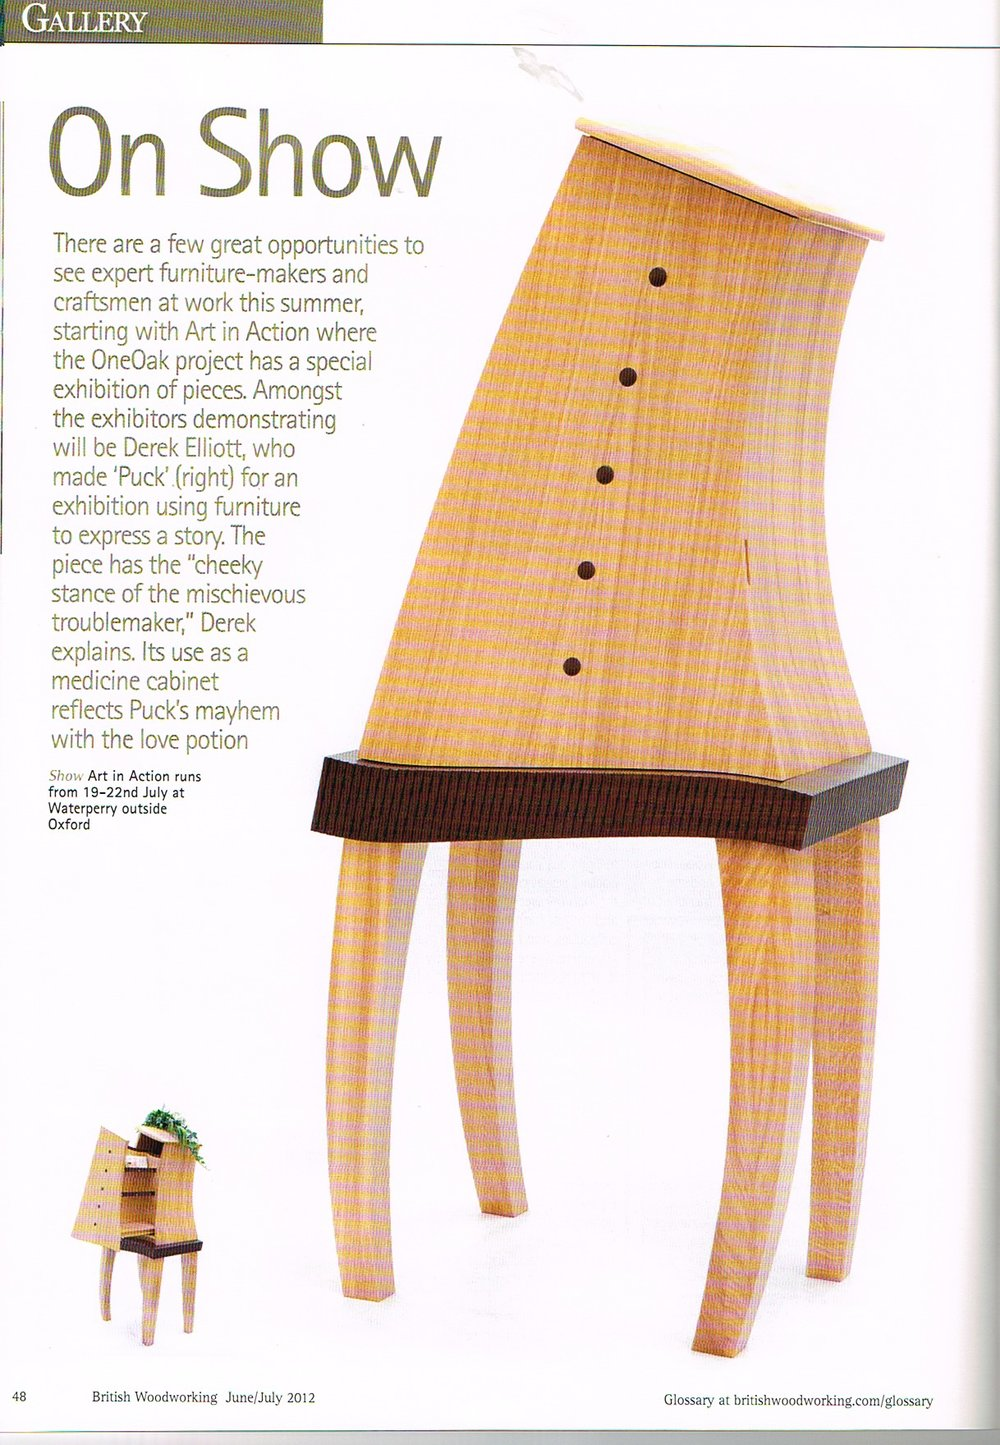 British Woodworking. June 2012